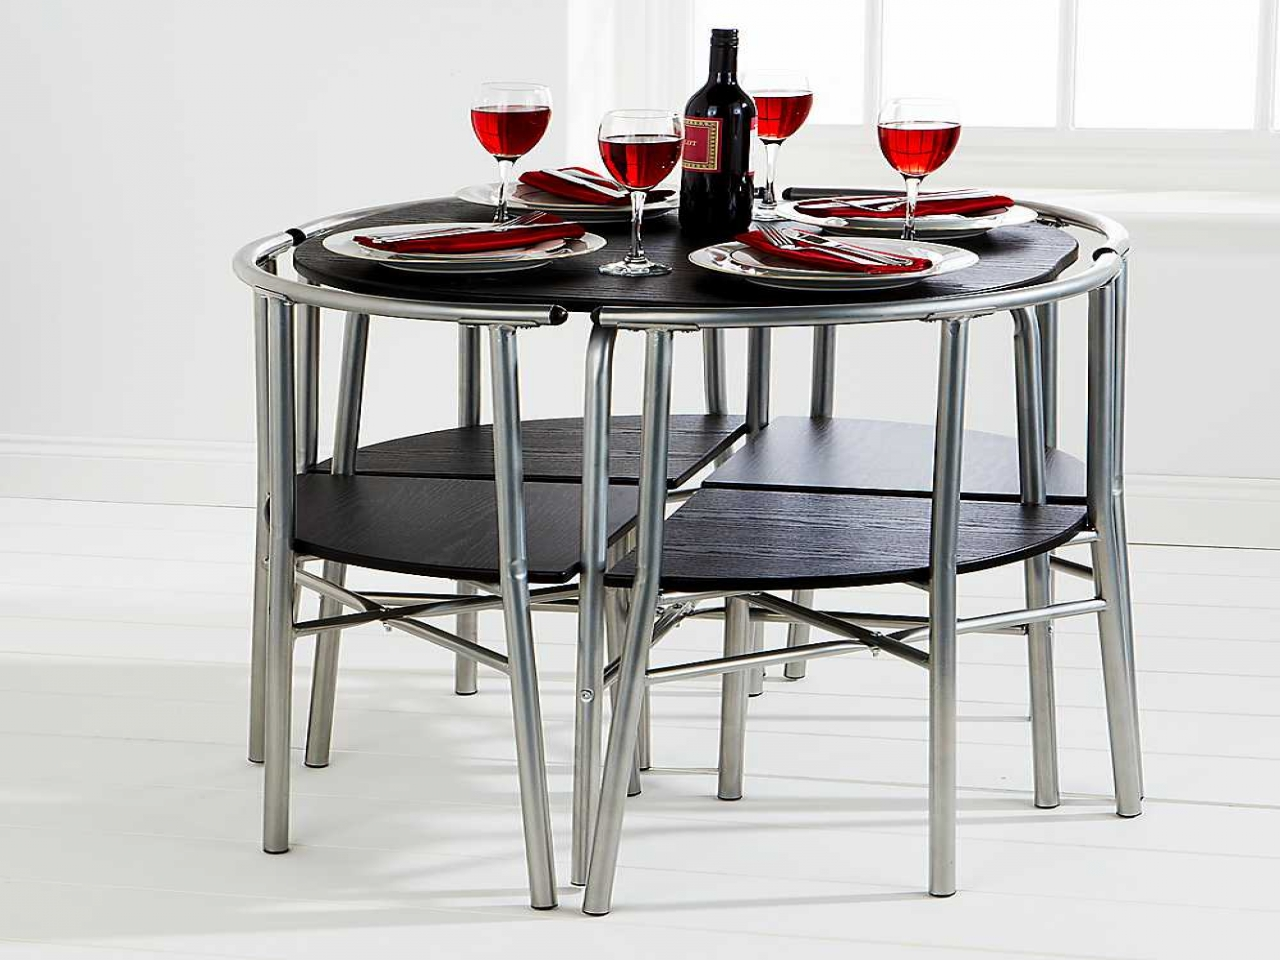 Space saver dining table roselawnlutheran for Space saving dining table